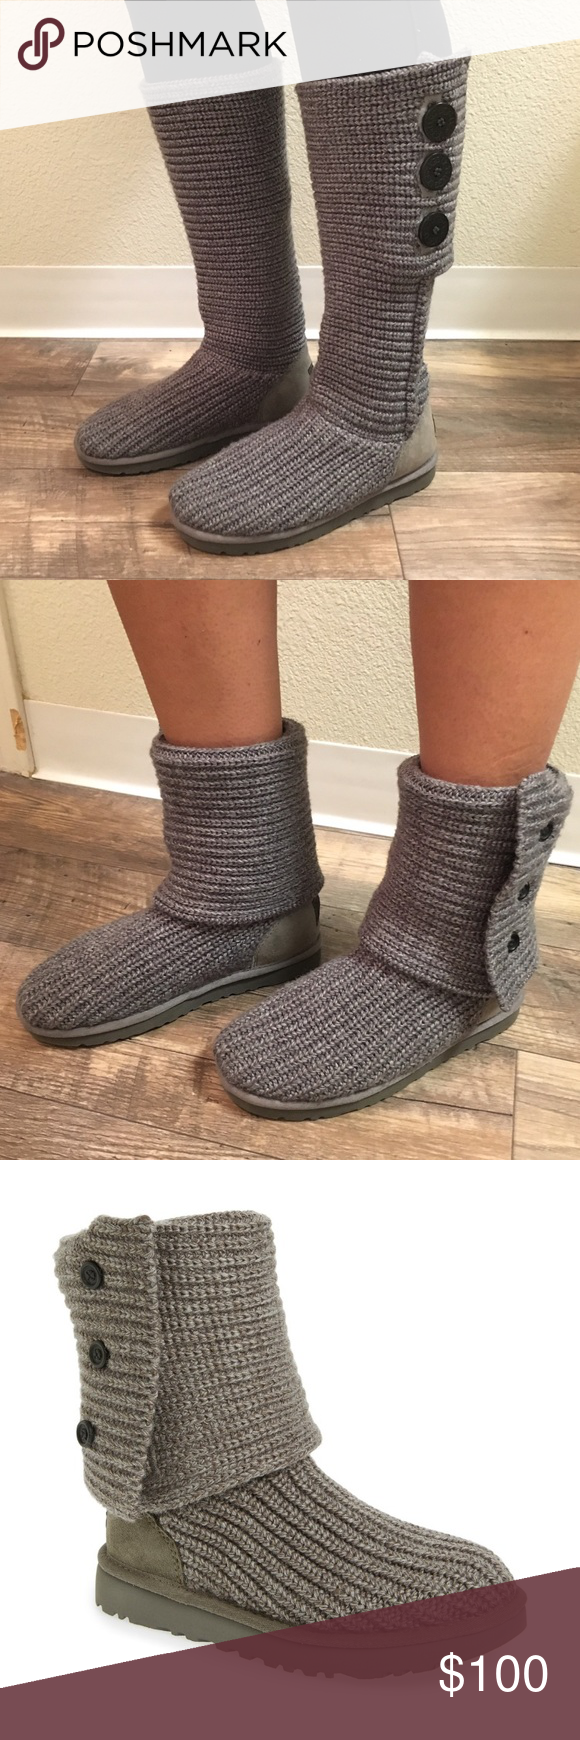 215b7e9cc4bb UGG Classic Cardy II Knit Boot A fan-favorite boot in a chunky sweater knit